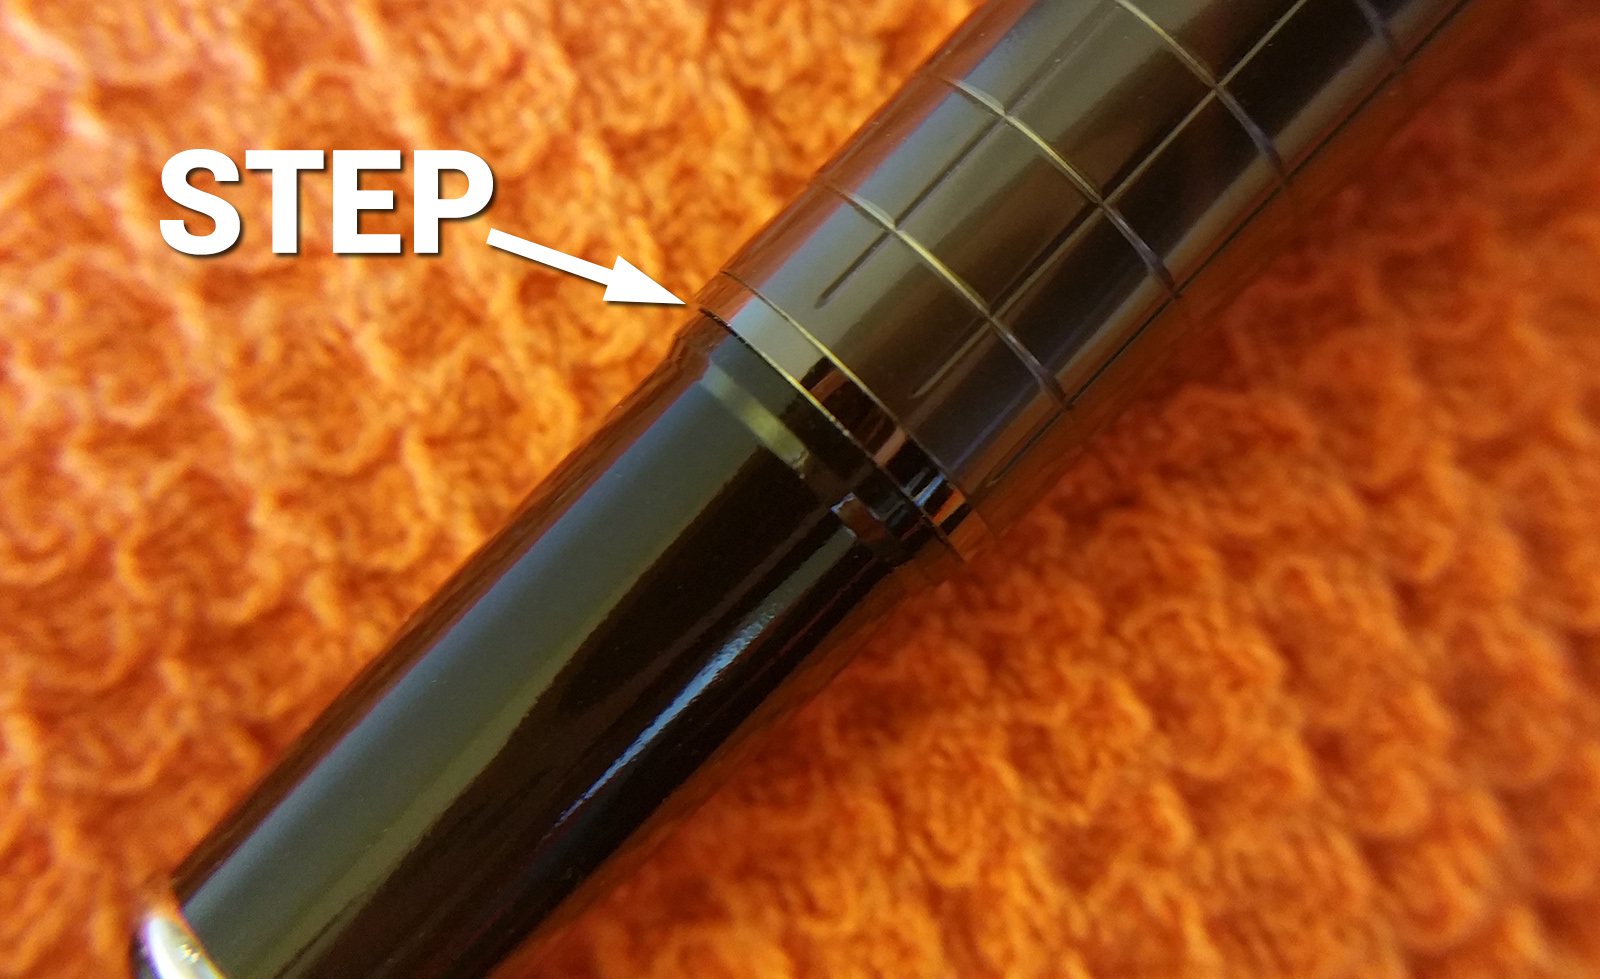 The Step of the Wing Sung 3203 Fountain Pen where the section meets the barrel